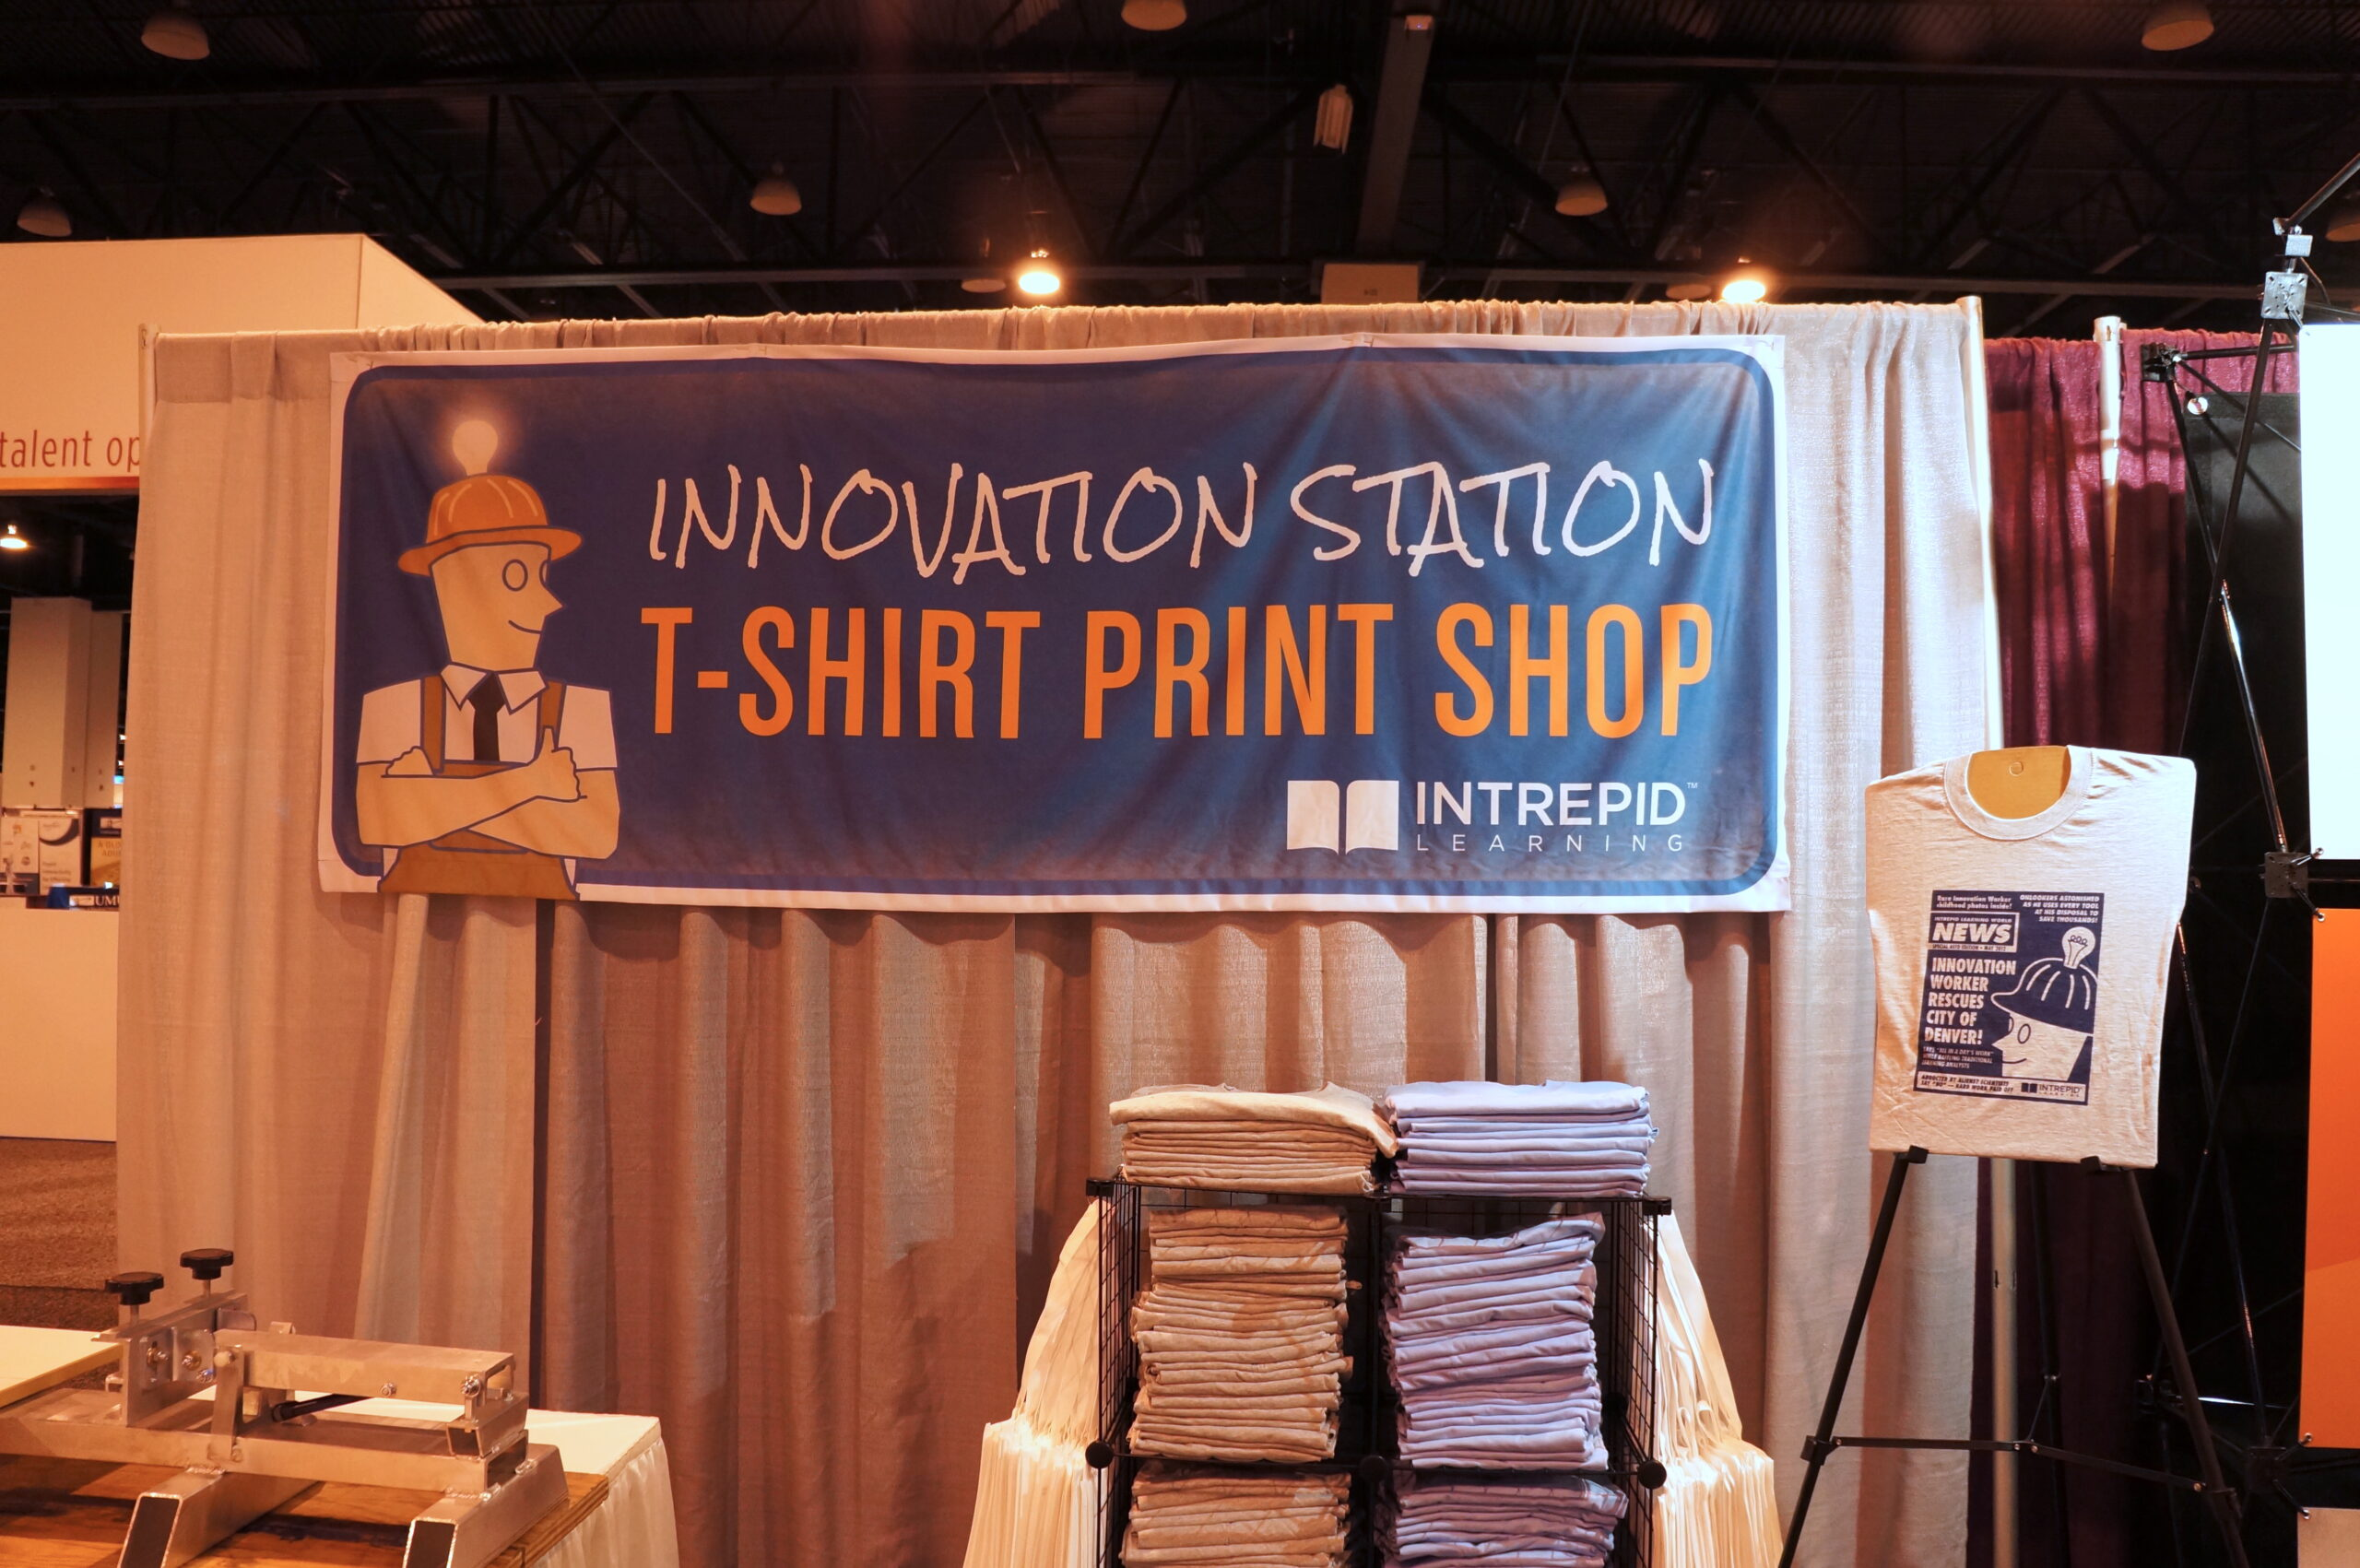 Innovation Station T-shirt Print Shop (Intrepid Learning Booth at ATD)